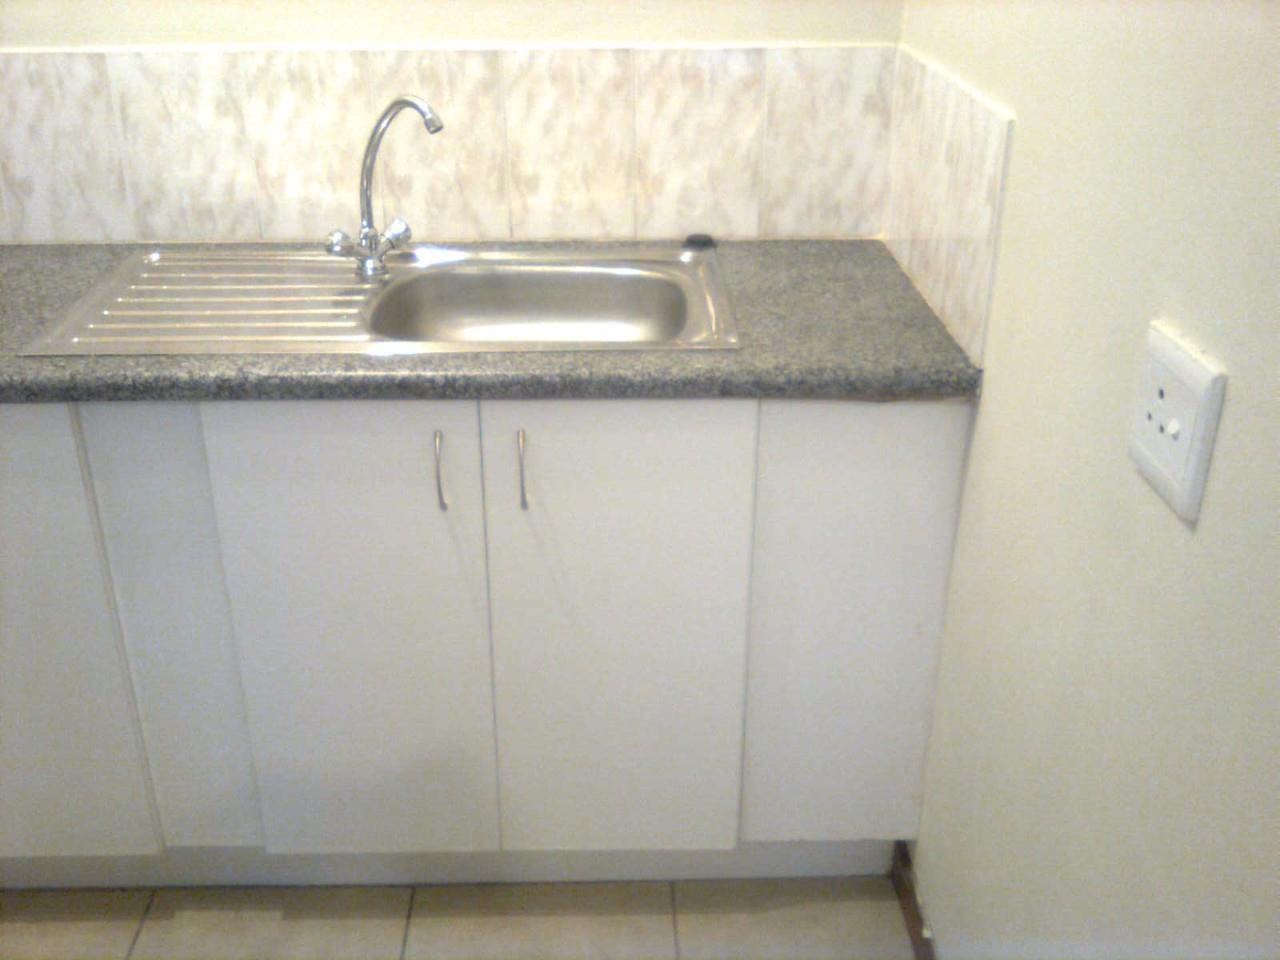 1 Bedroom Apartment For Sale in Kempton Park